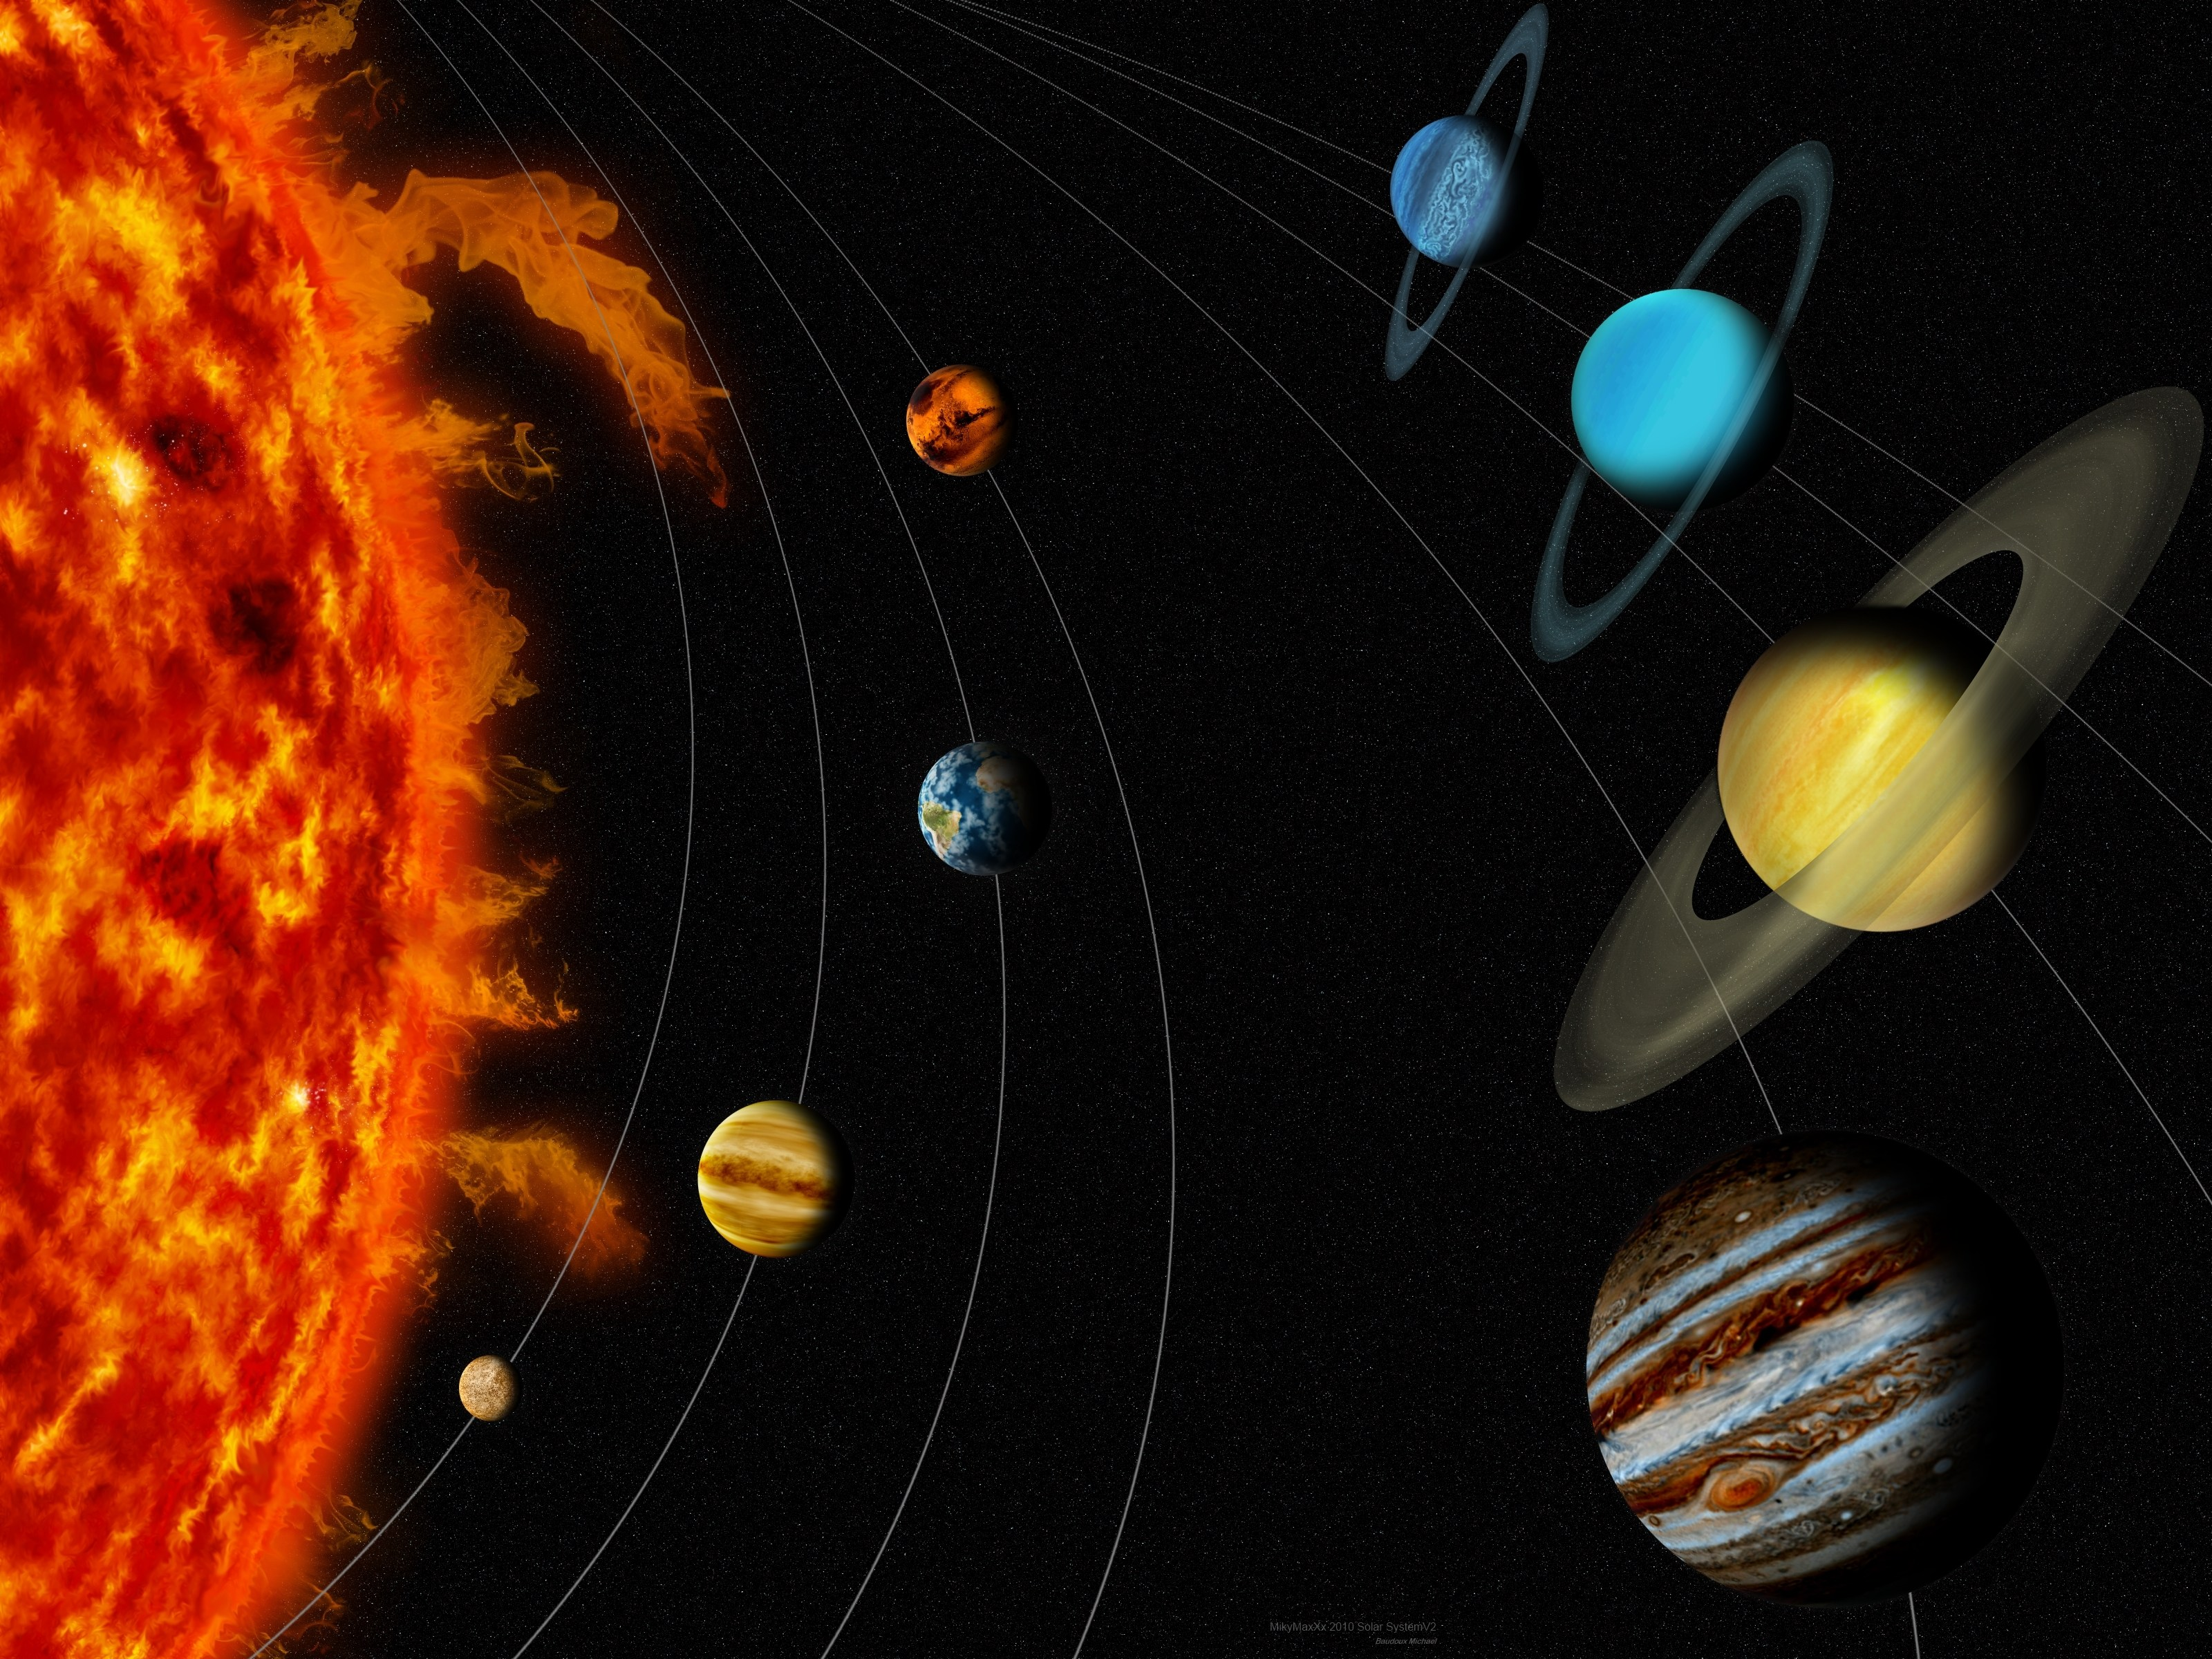 outer planets of the solar system - HD1600×1200